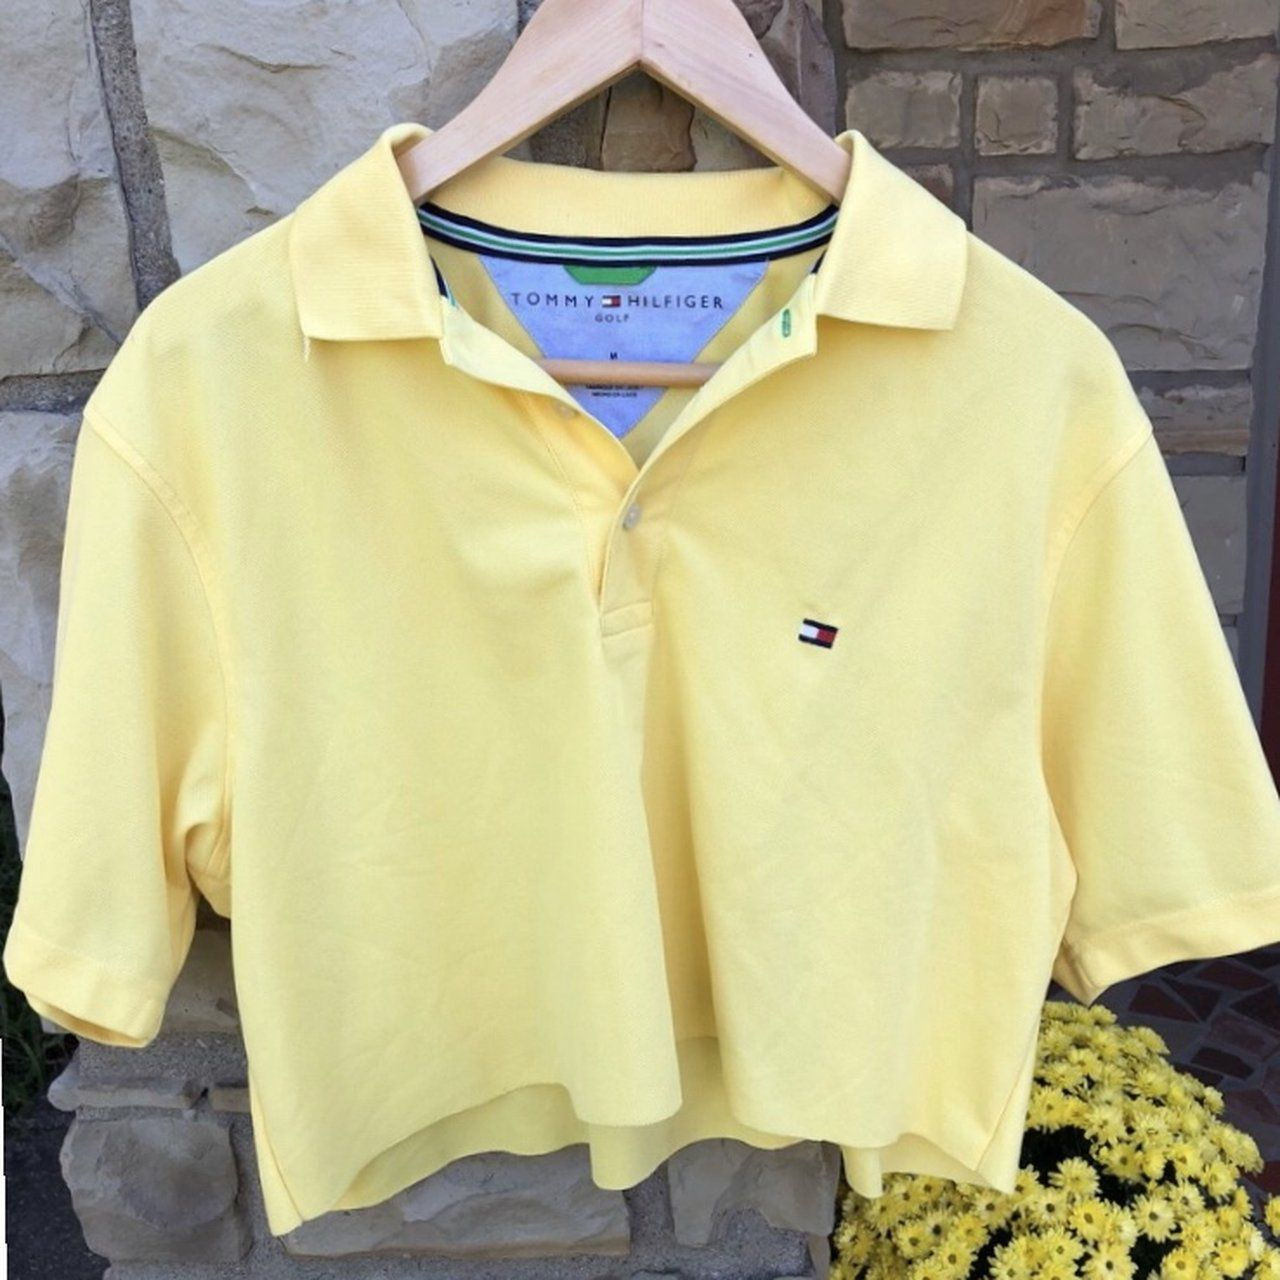 45ac72f41101d tommy hilfiger slight cropped polo shirt ~no flaws ~emma to - Depop